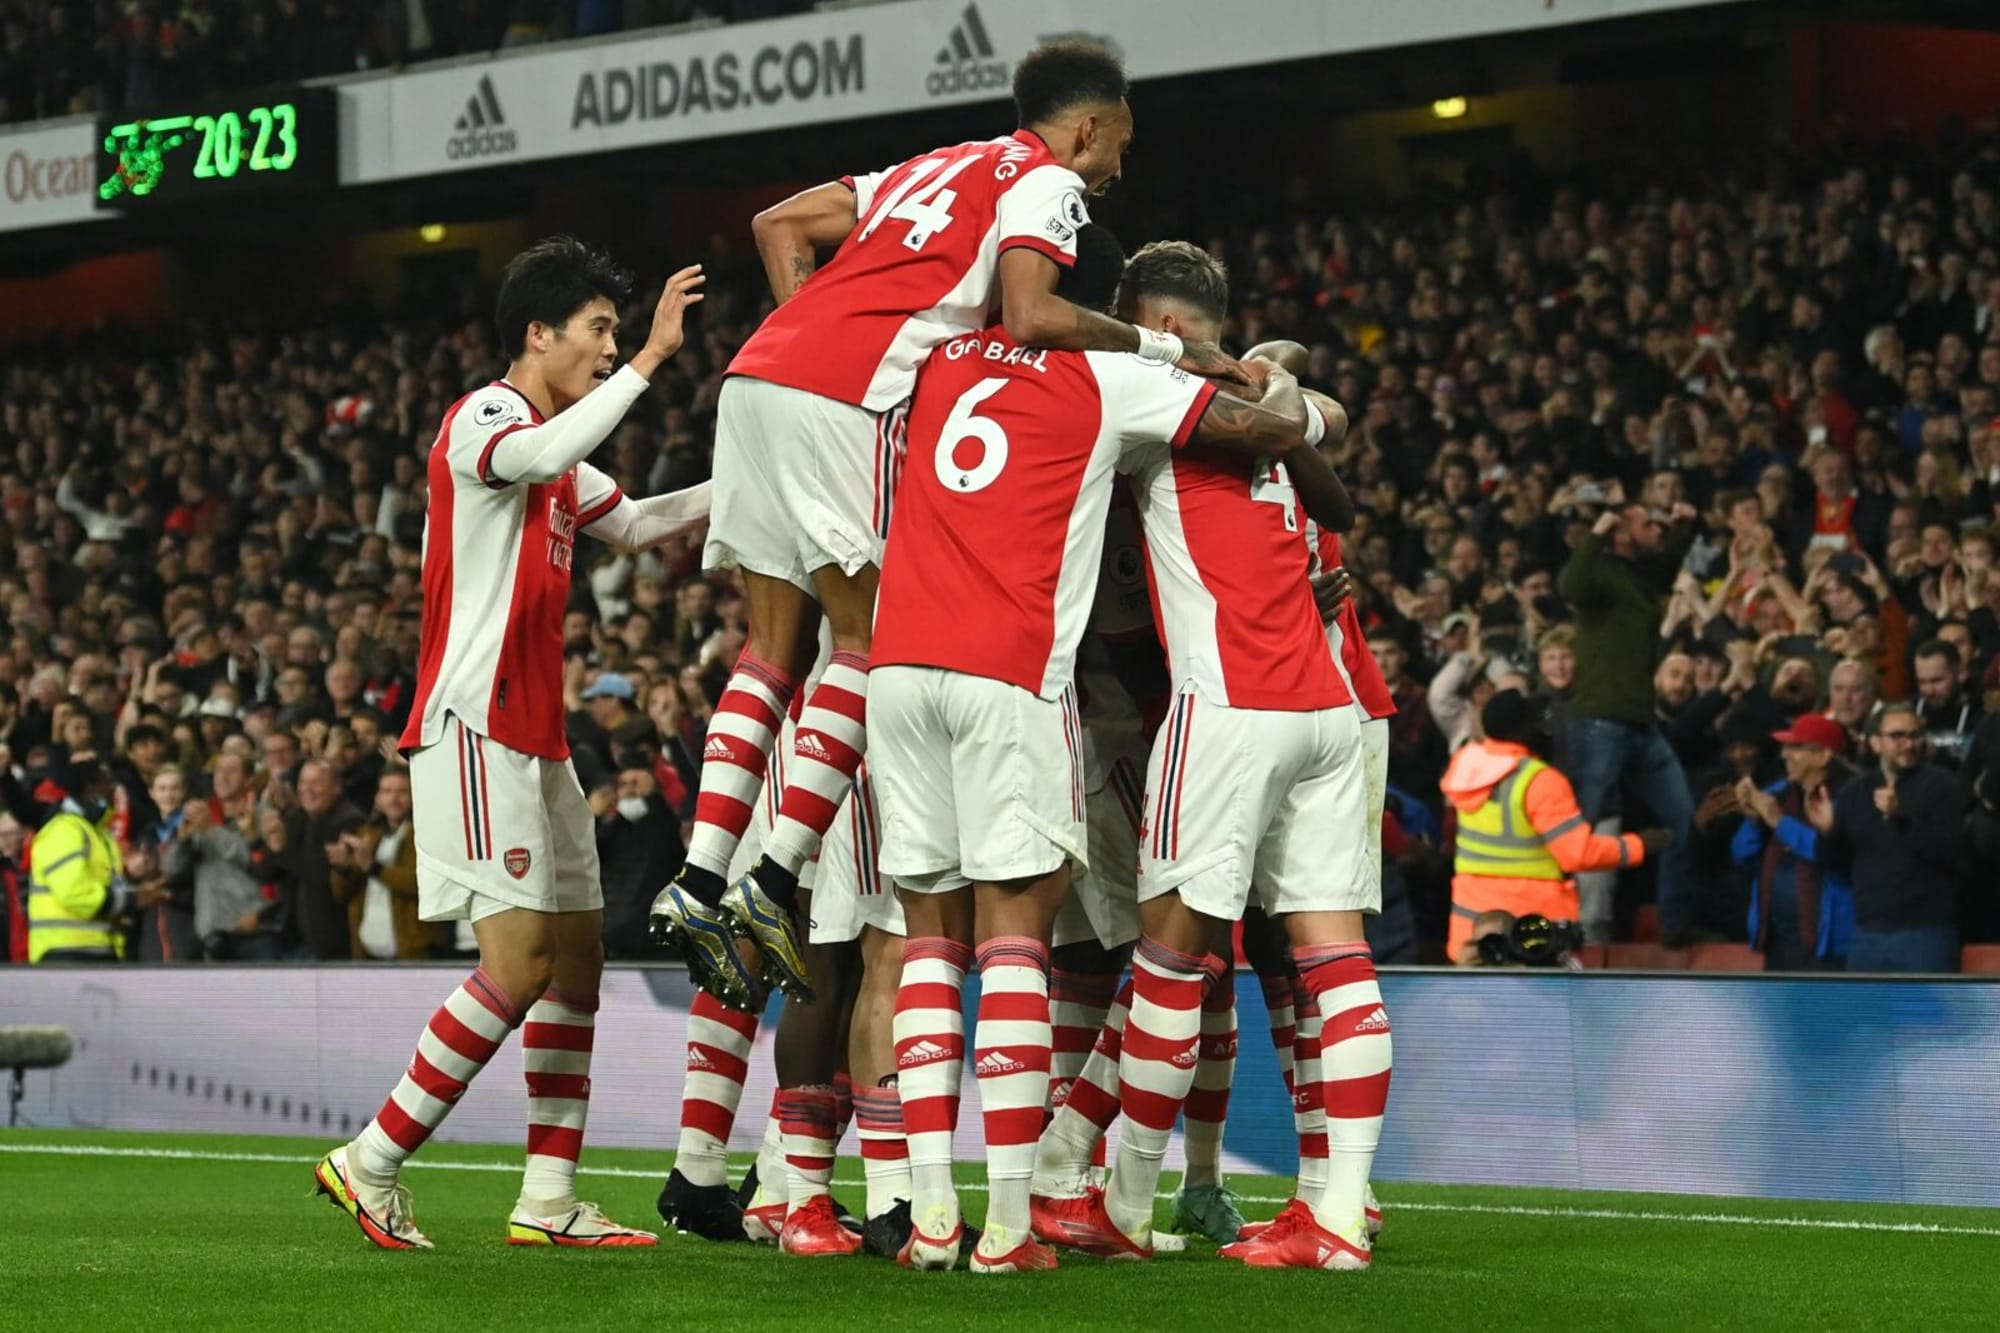 Arsenal predicted lineup vs Leeds: 4-3-3 with Martinelli?